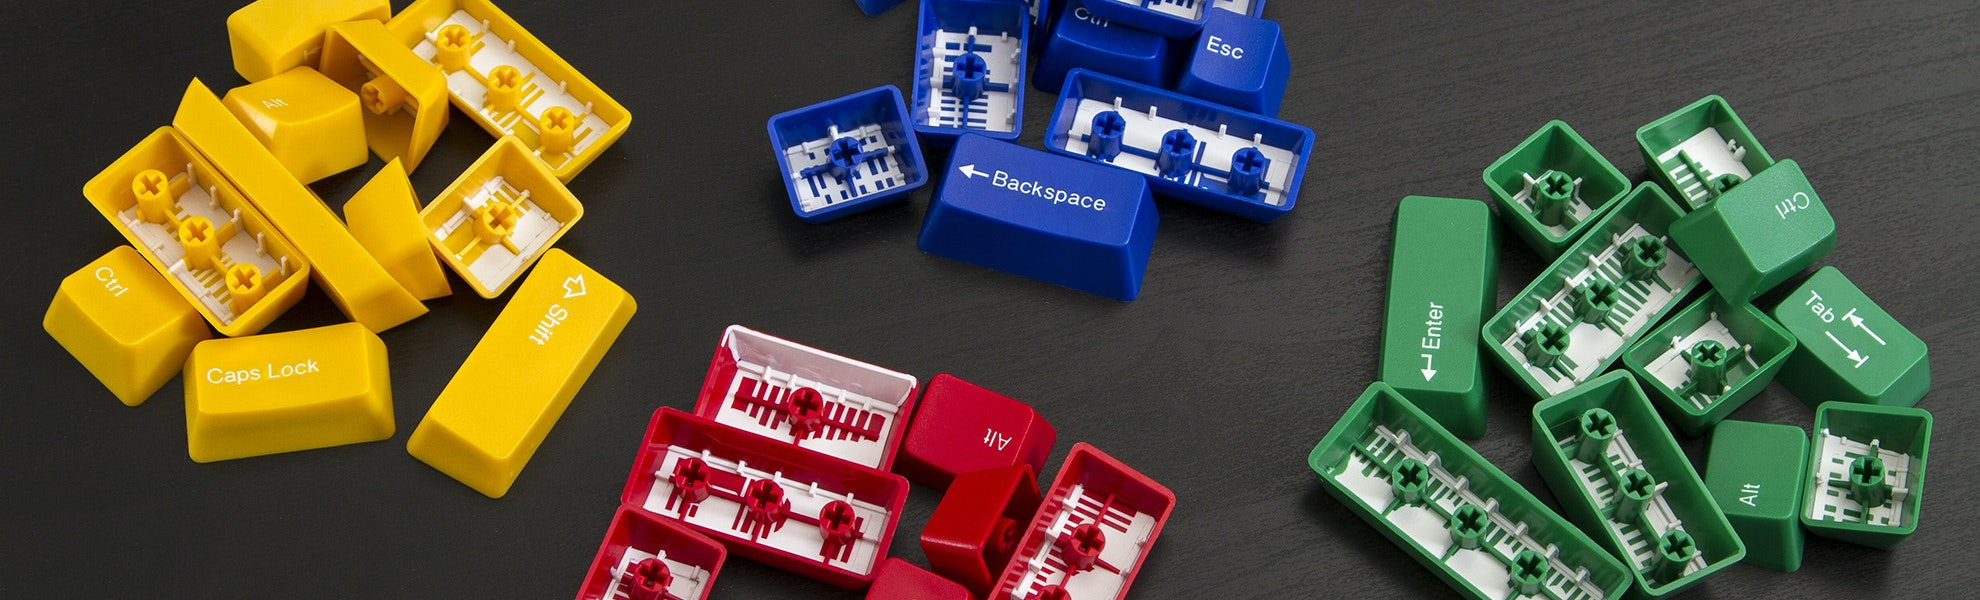 Doubleshot ABS Sculpted Keycaps